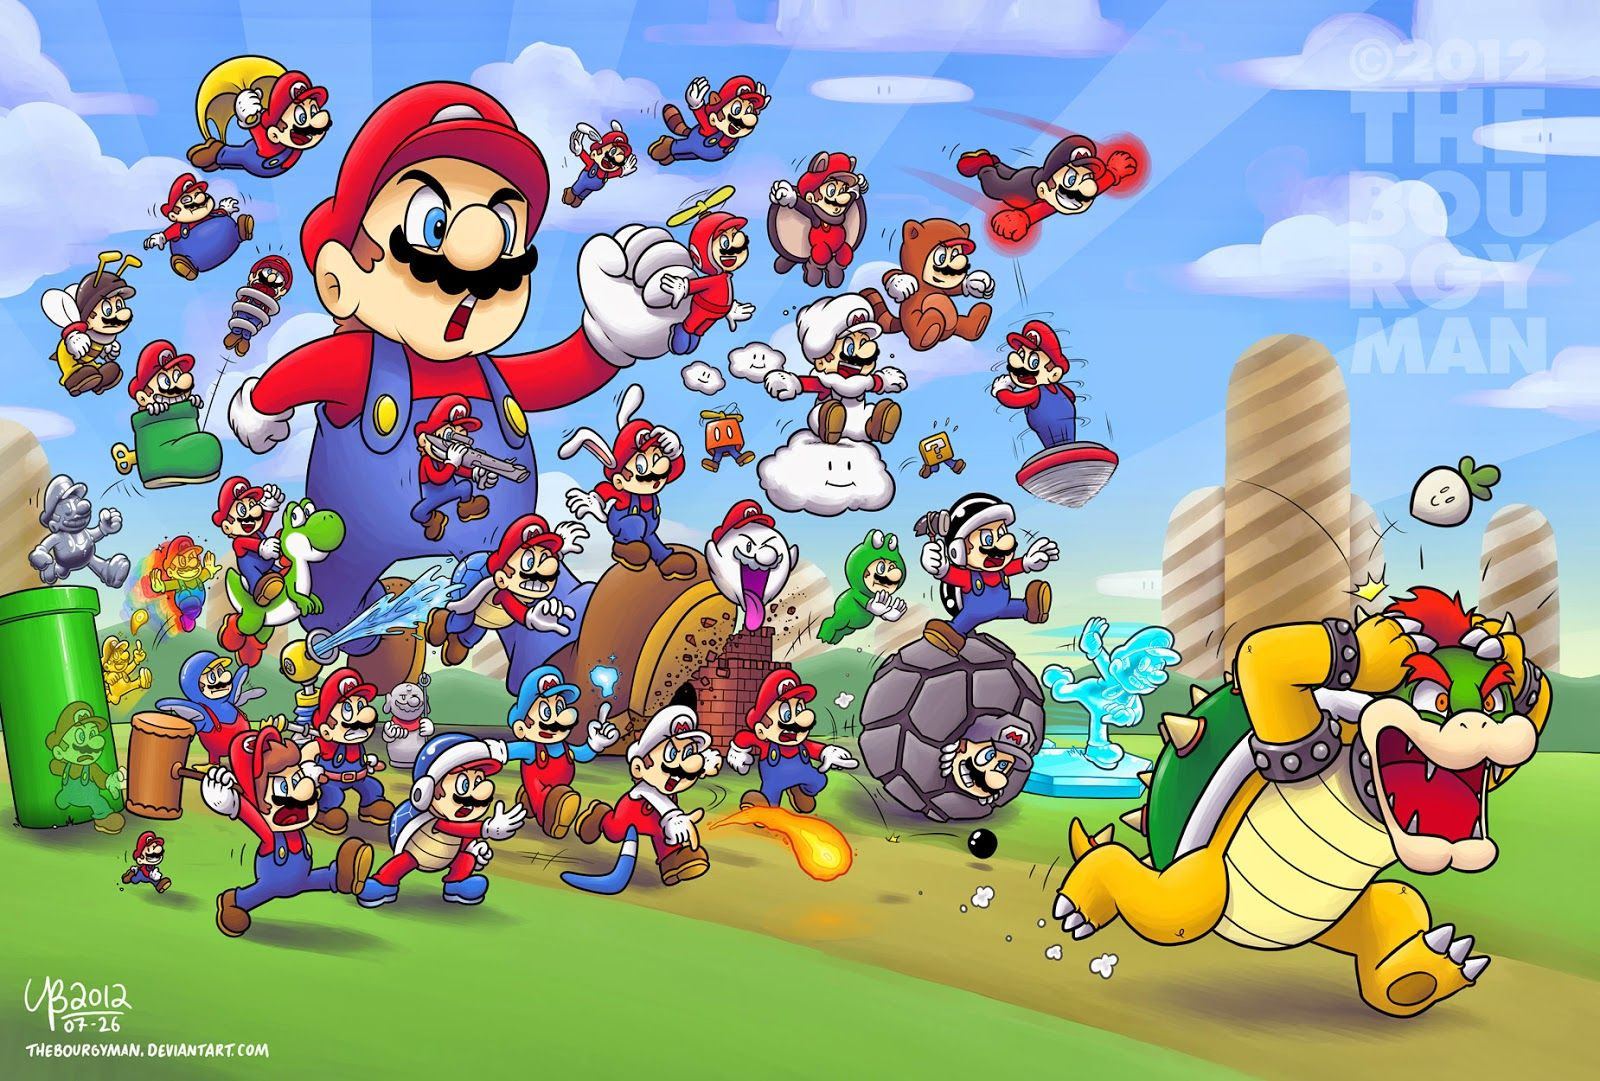 1600x1081 Life of Turner: Ranking the Mario games: the power-ups